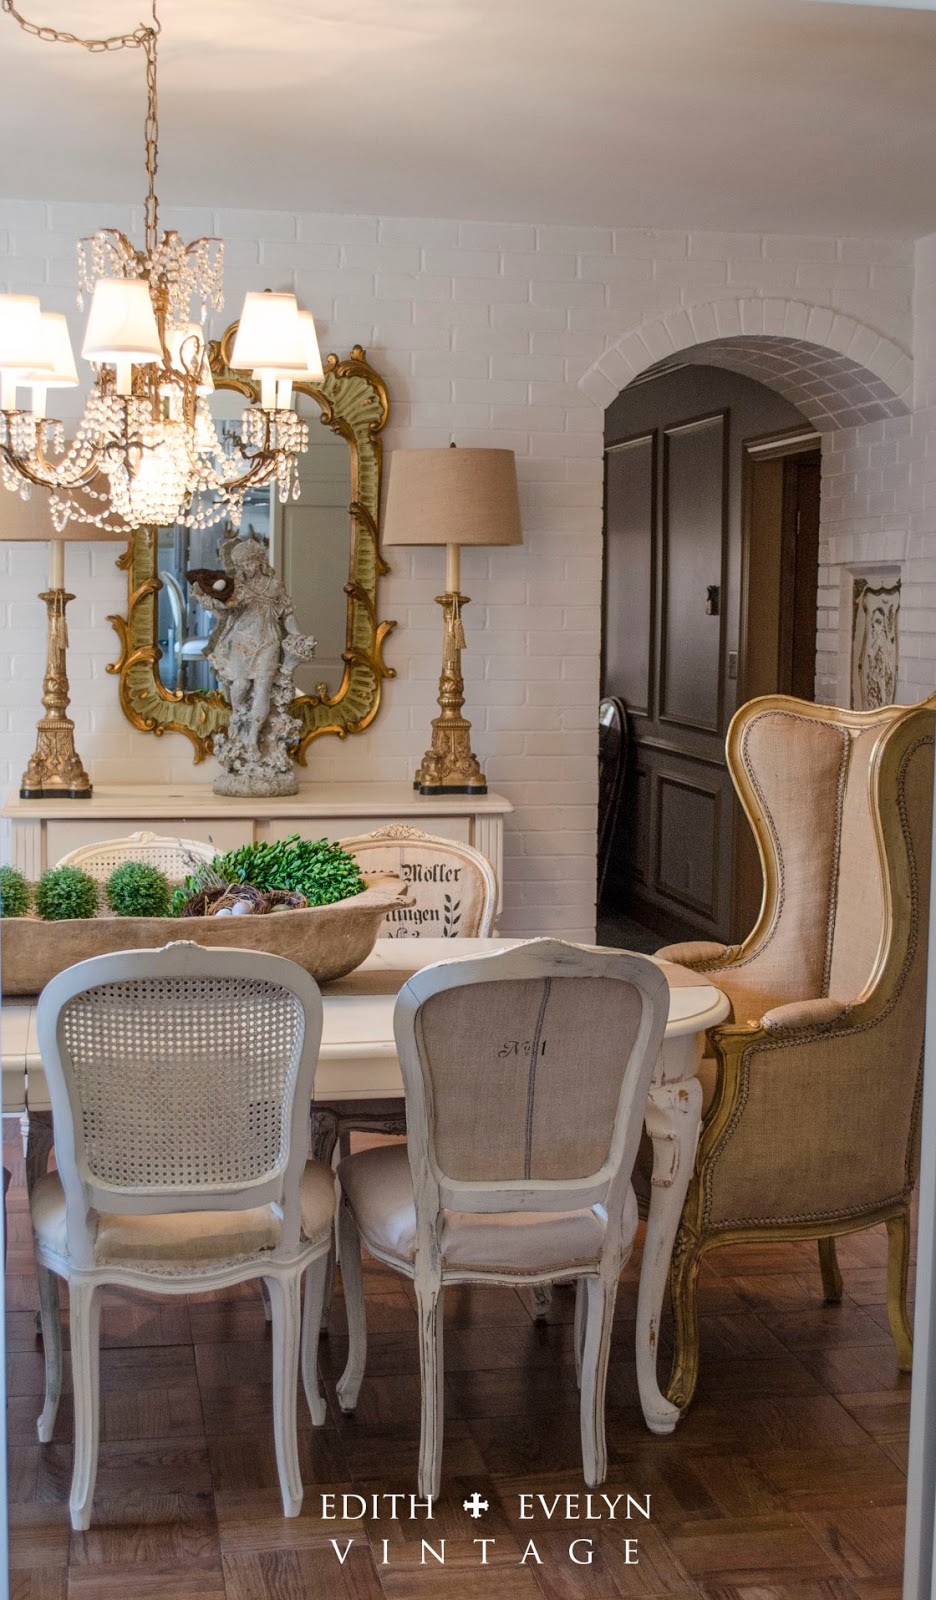 Stunning dininr room decorated in vintage French chateau style.